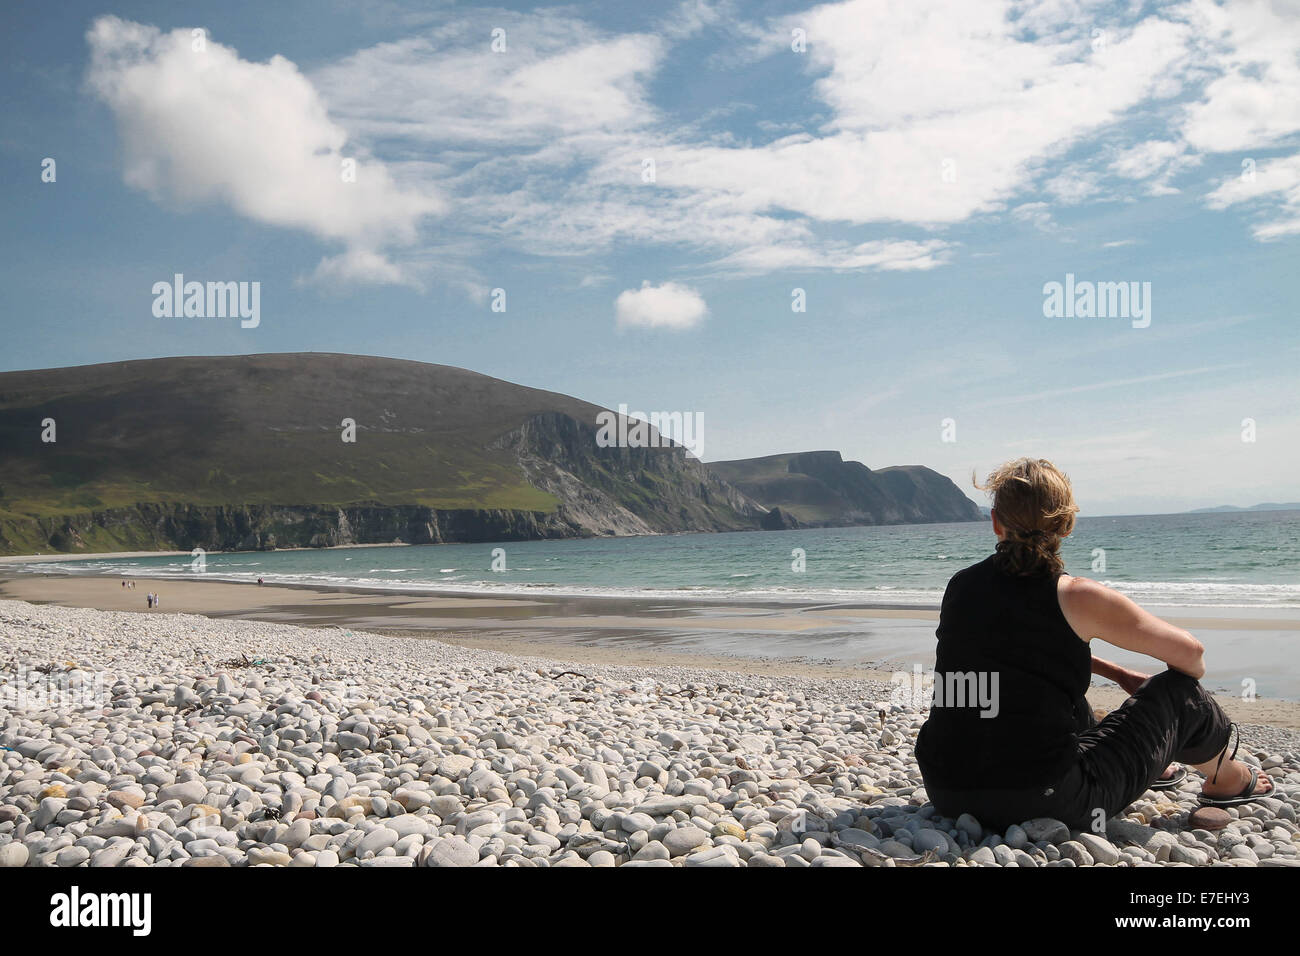 Myself overlooking Minaun Heights at Keel Beach, Achill Island, Ireland. - Stock Image